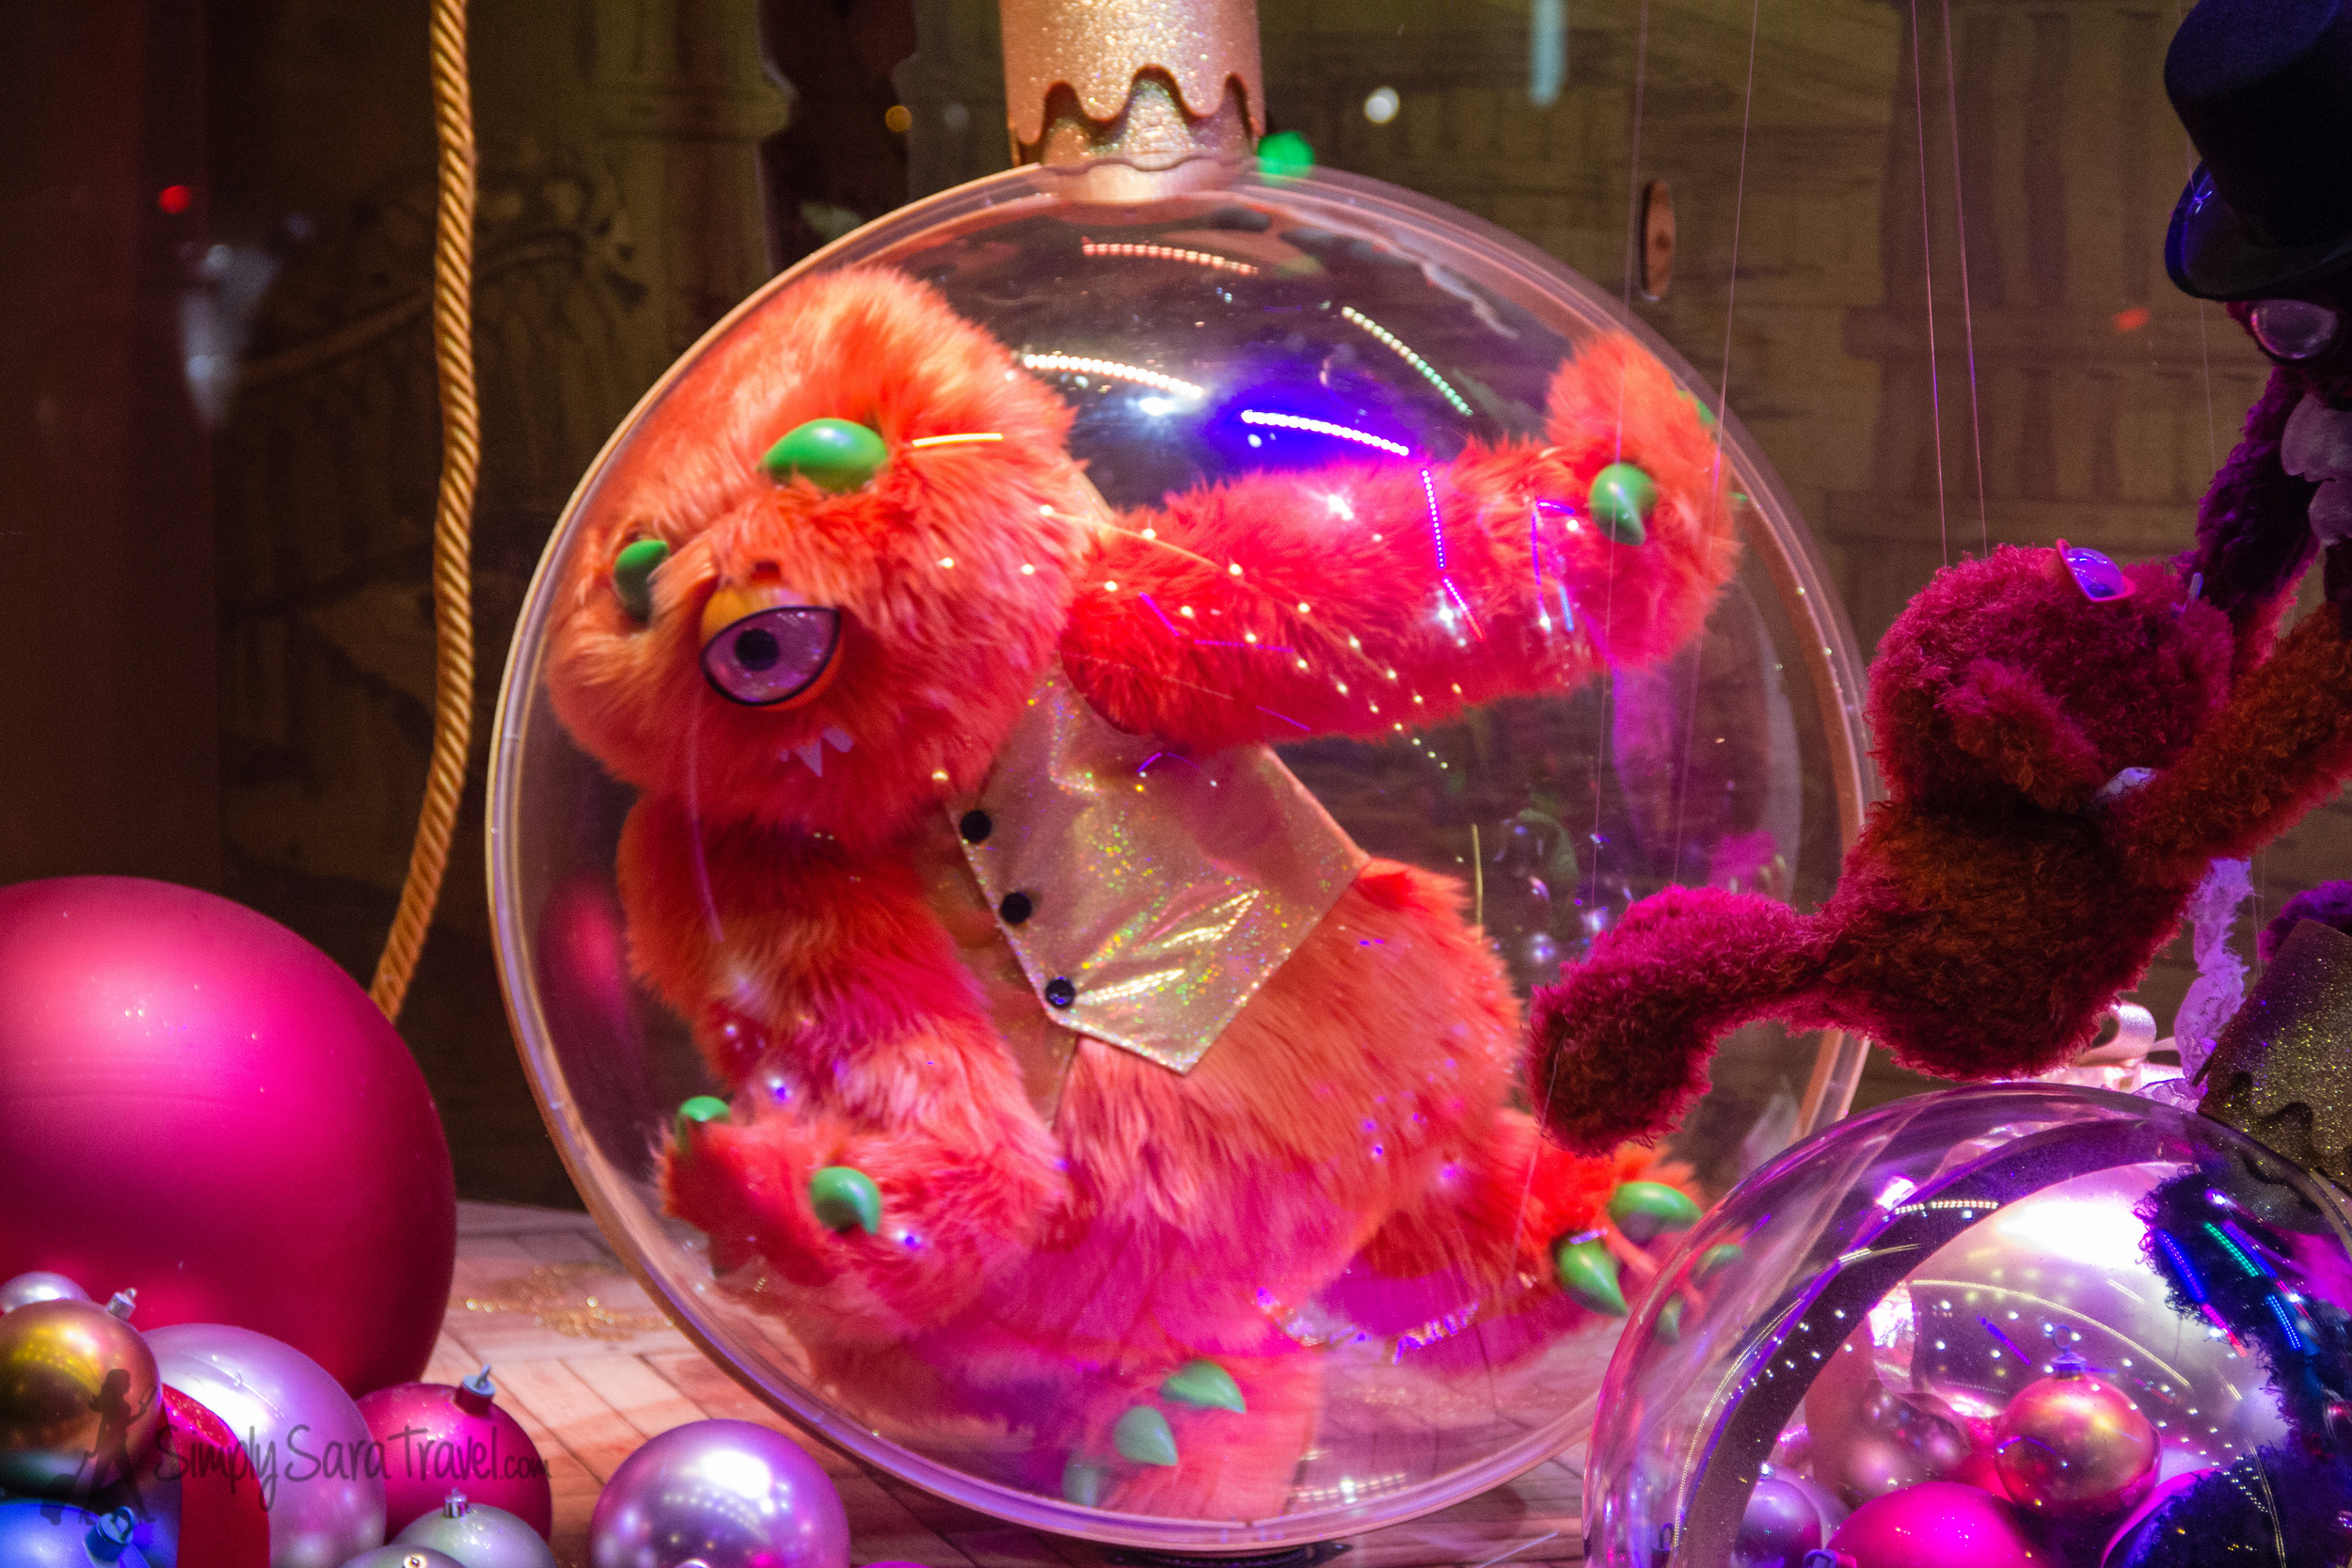 Monster trapped in ornament in Galeries Lafayette's Christmas window display in Paris